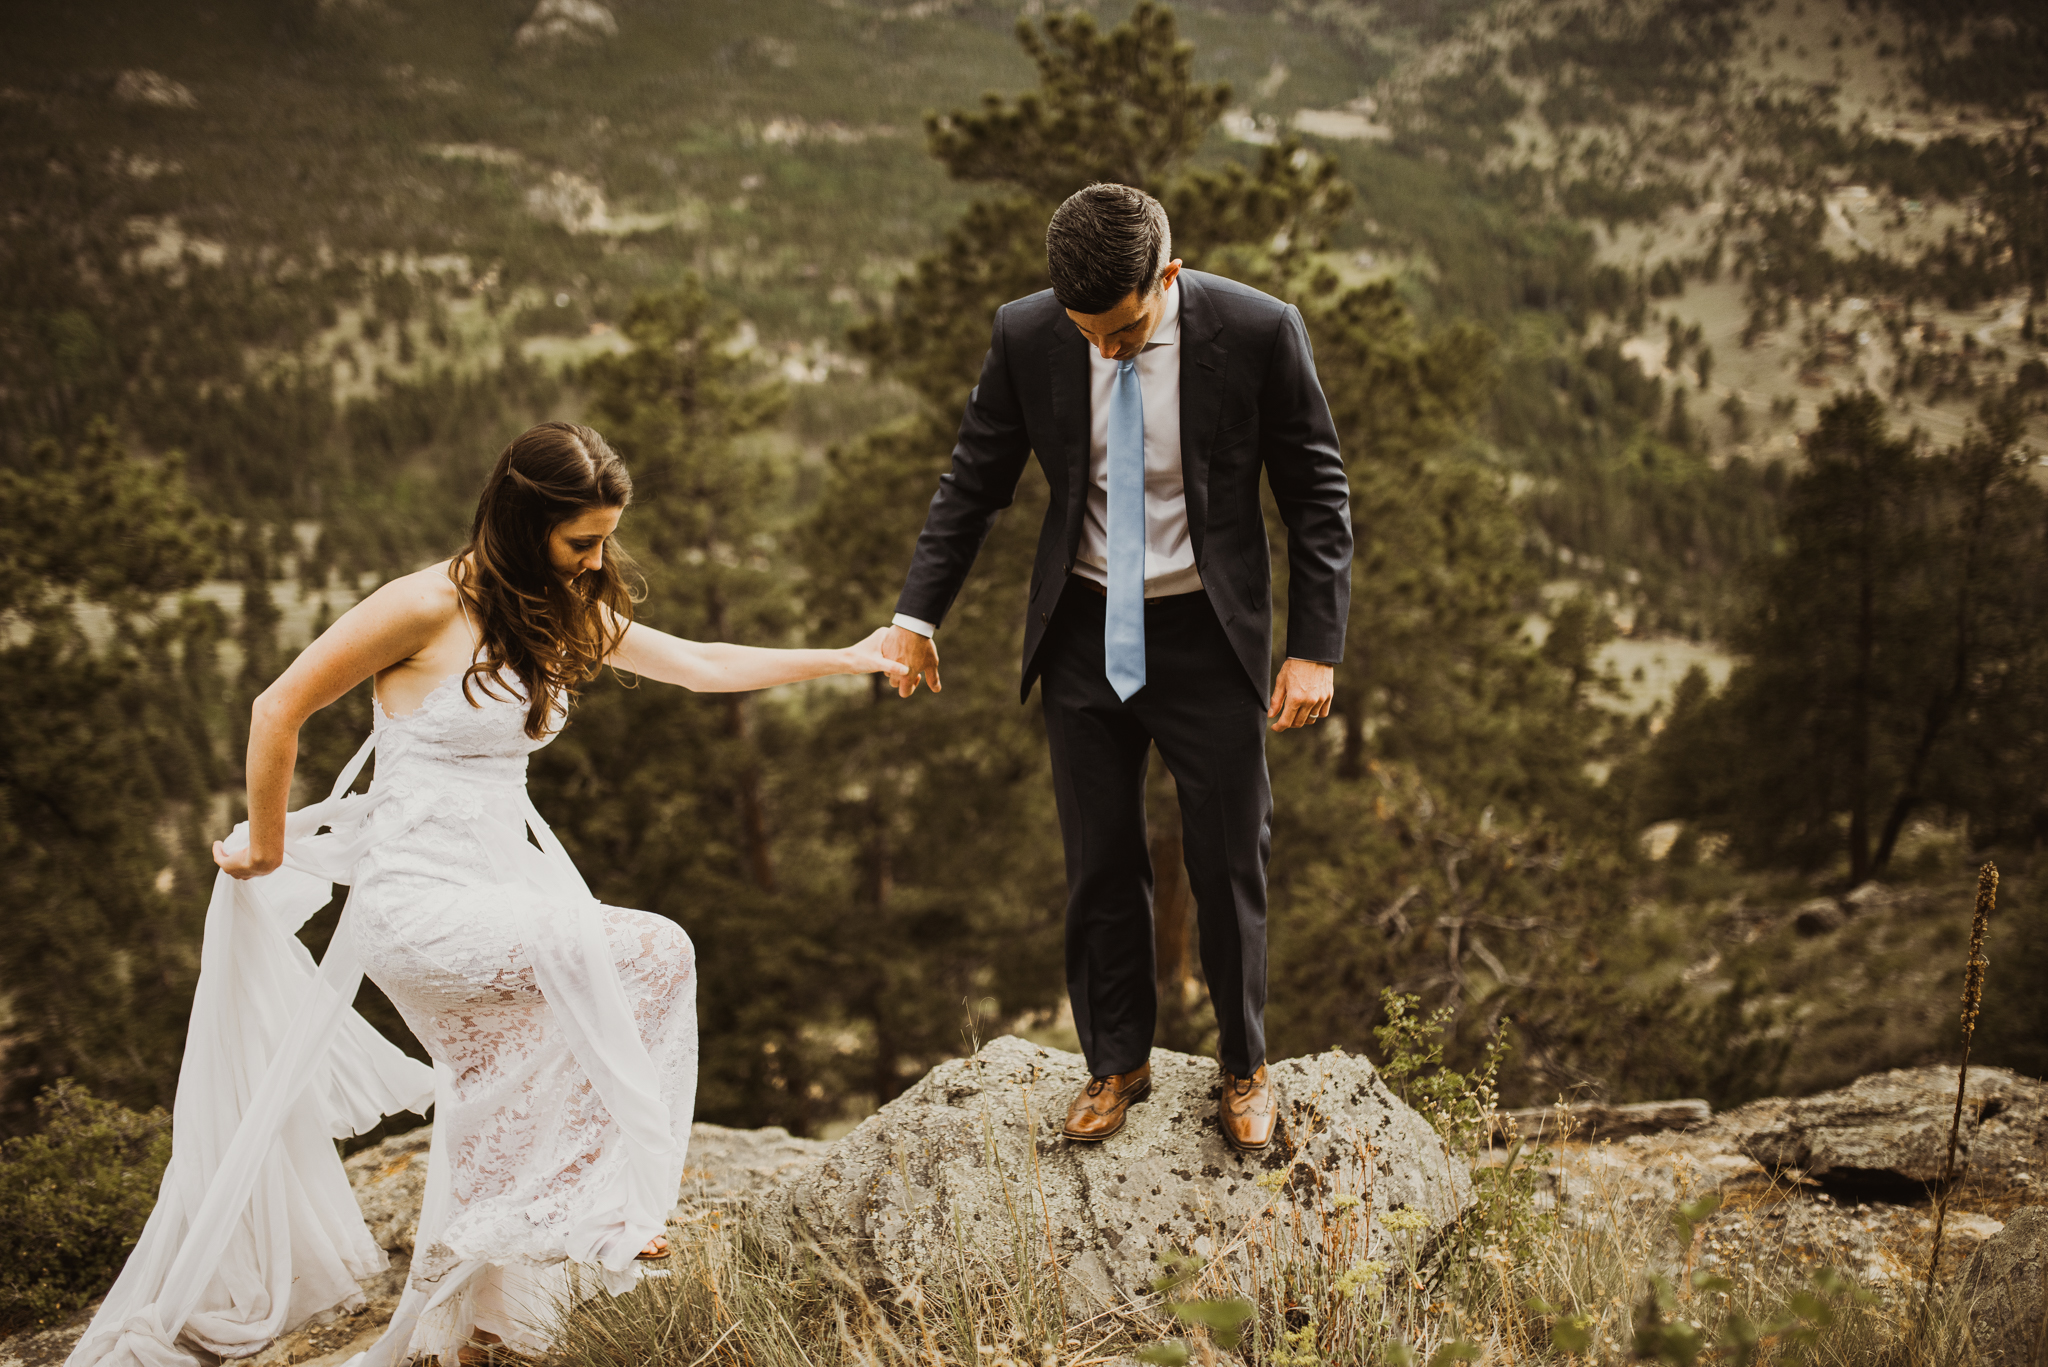 ©Isaiah + Taylor Photography - Estes National Park Adventure Elopement, Colorado Rockies-103.jpg